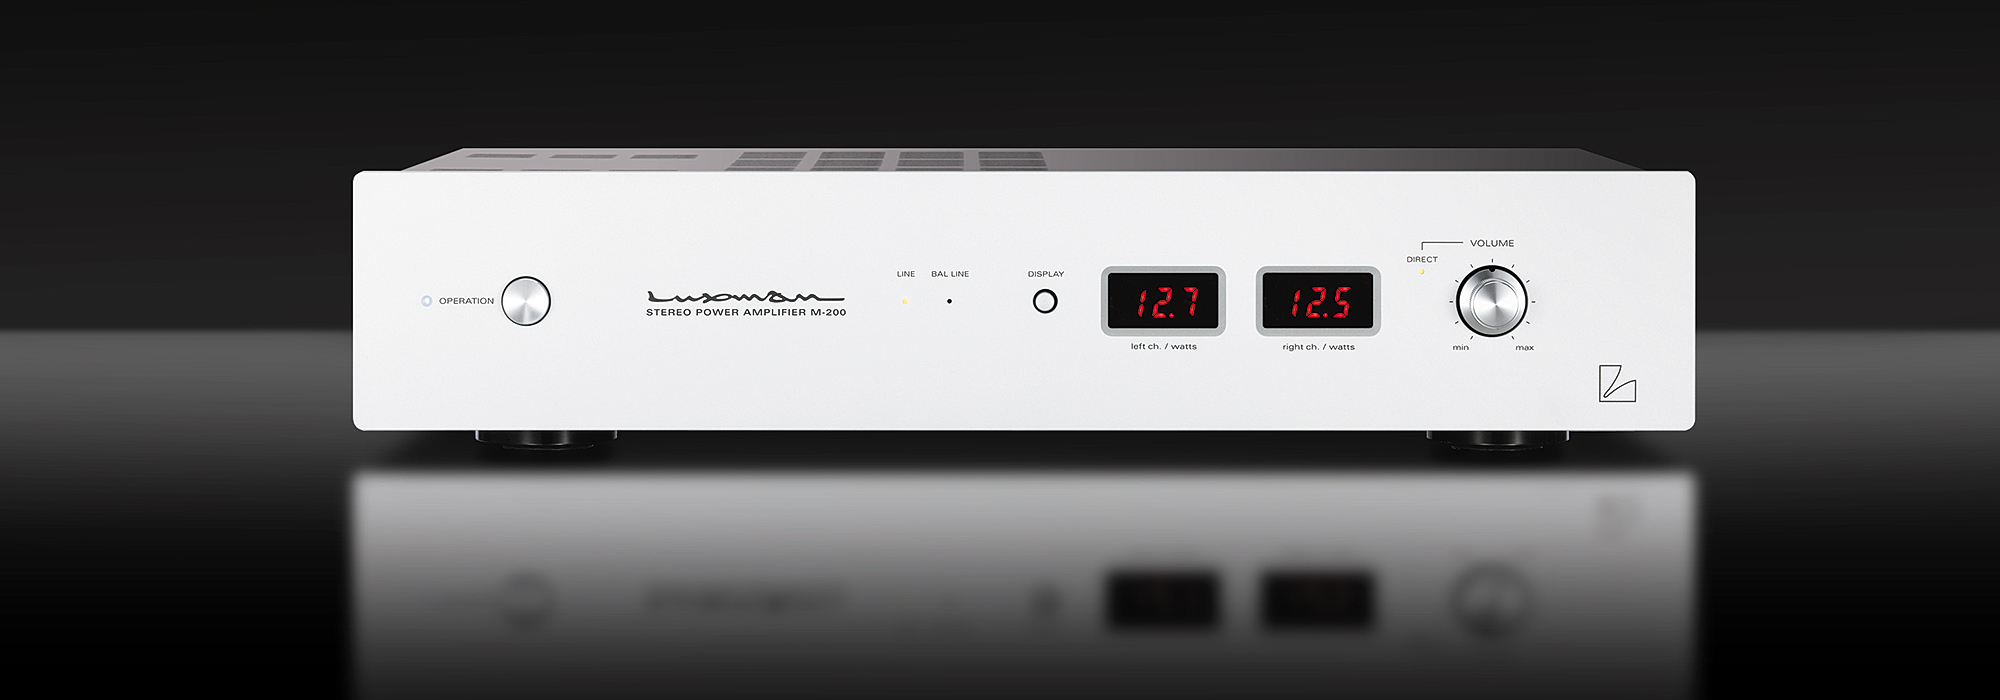 M 200 Power Amplifiers Products Luxman Seeking Higher Sound Low Amplifier With Digital Volume Control Quality